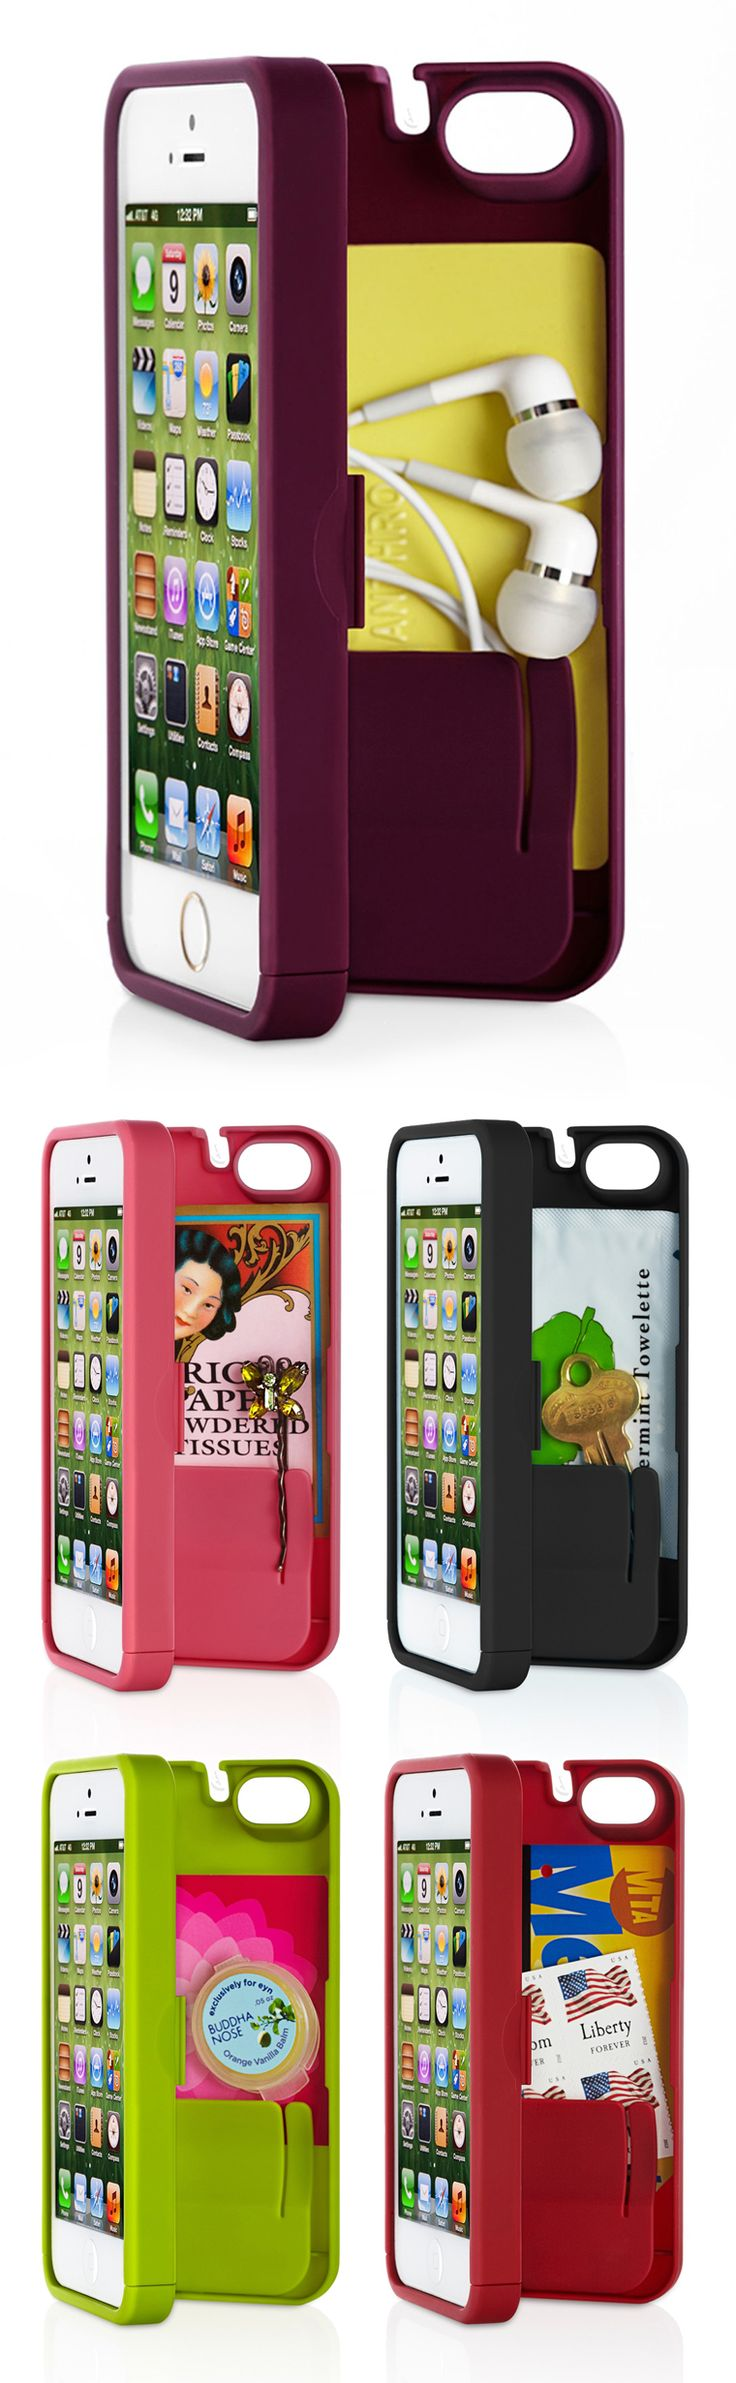 Secret compartment phone case // EYN holds iPhone, money, cards, keys, ear buds, tissues, bobby pins etc. and more! Perfect for a night out, or the gym #product_design Get it here now: http://amzn.to/2wOcks6